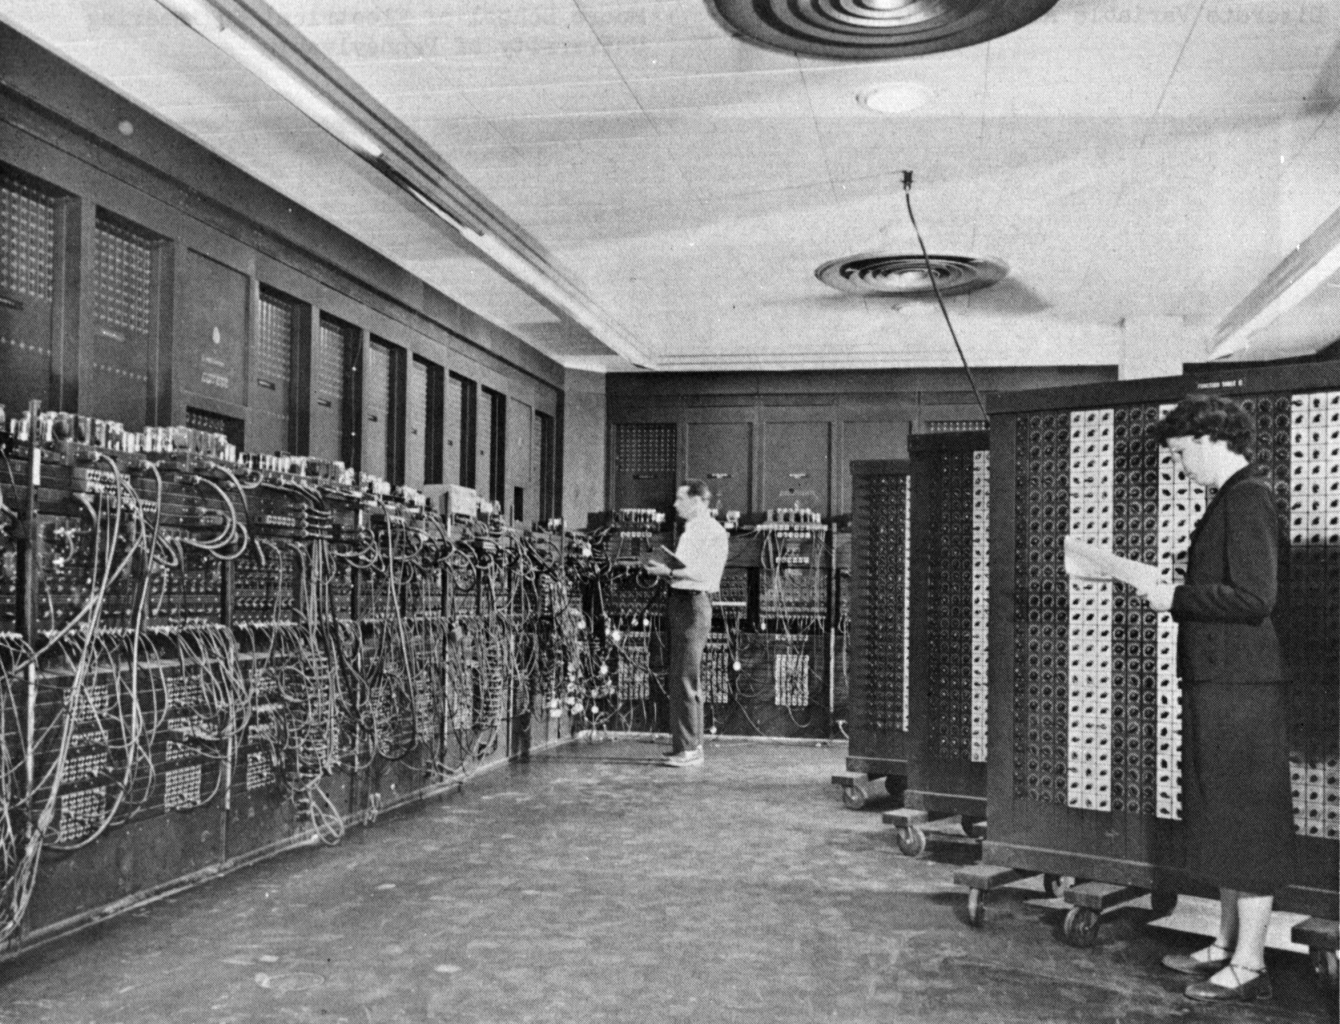 https://upload.wikimedia.org/wikipedia/commons/4/4e/Eniac.jpg